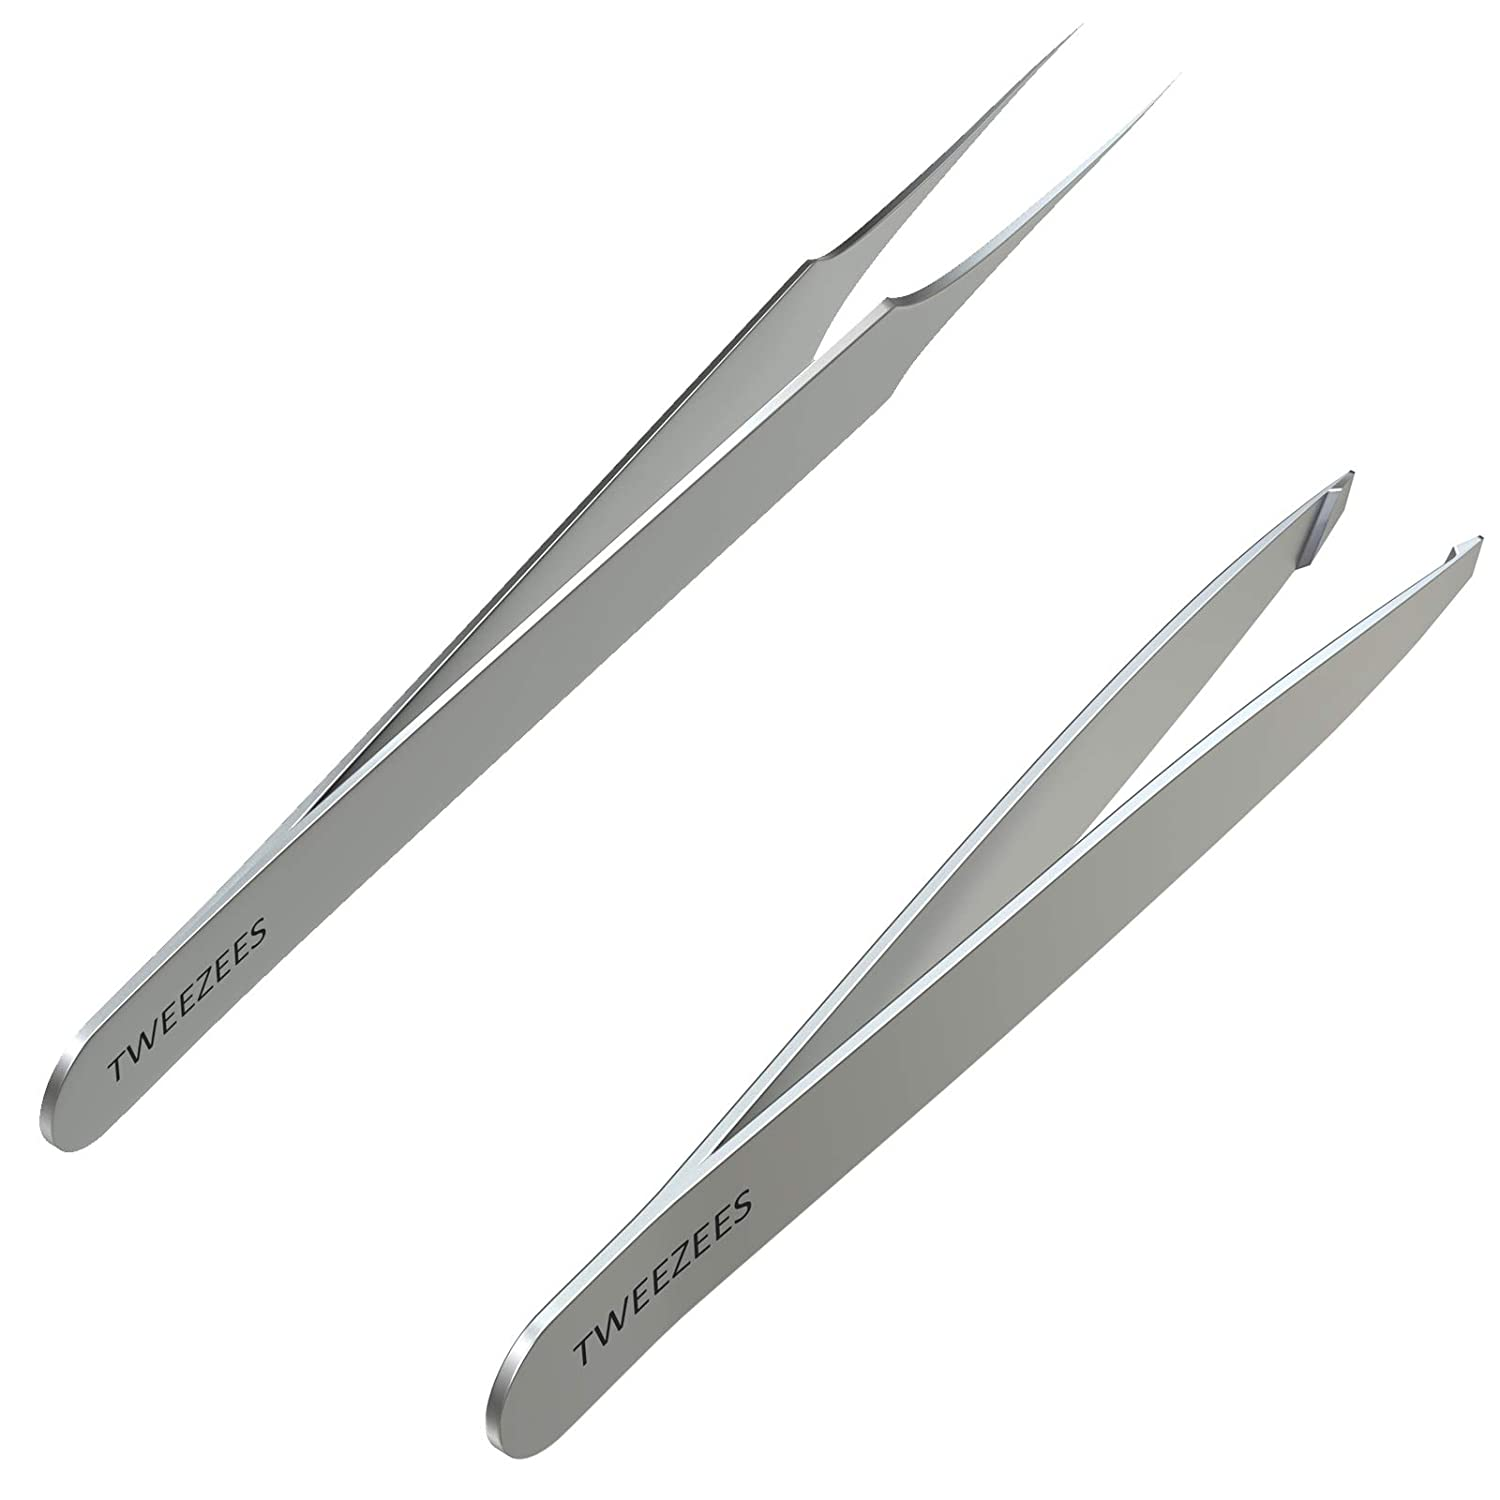 Tweezees Precision Stainless Steel Tweezers | Professional Slant Tip & Splinter Tip Tweezer | Extra Sharp Hair Removal Tool | For Eyebrow Shaping